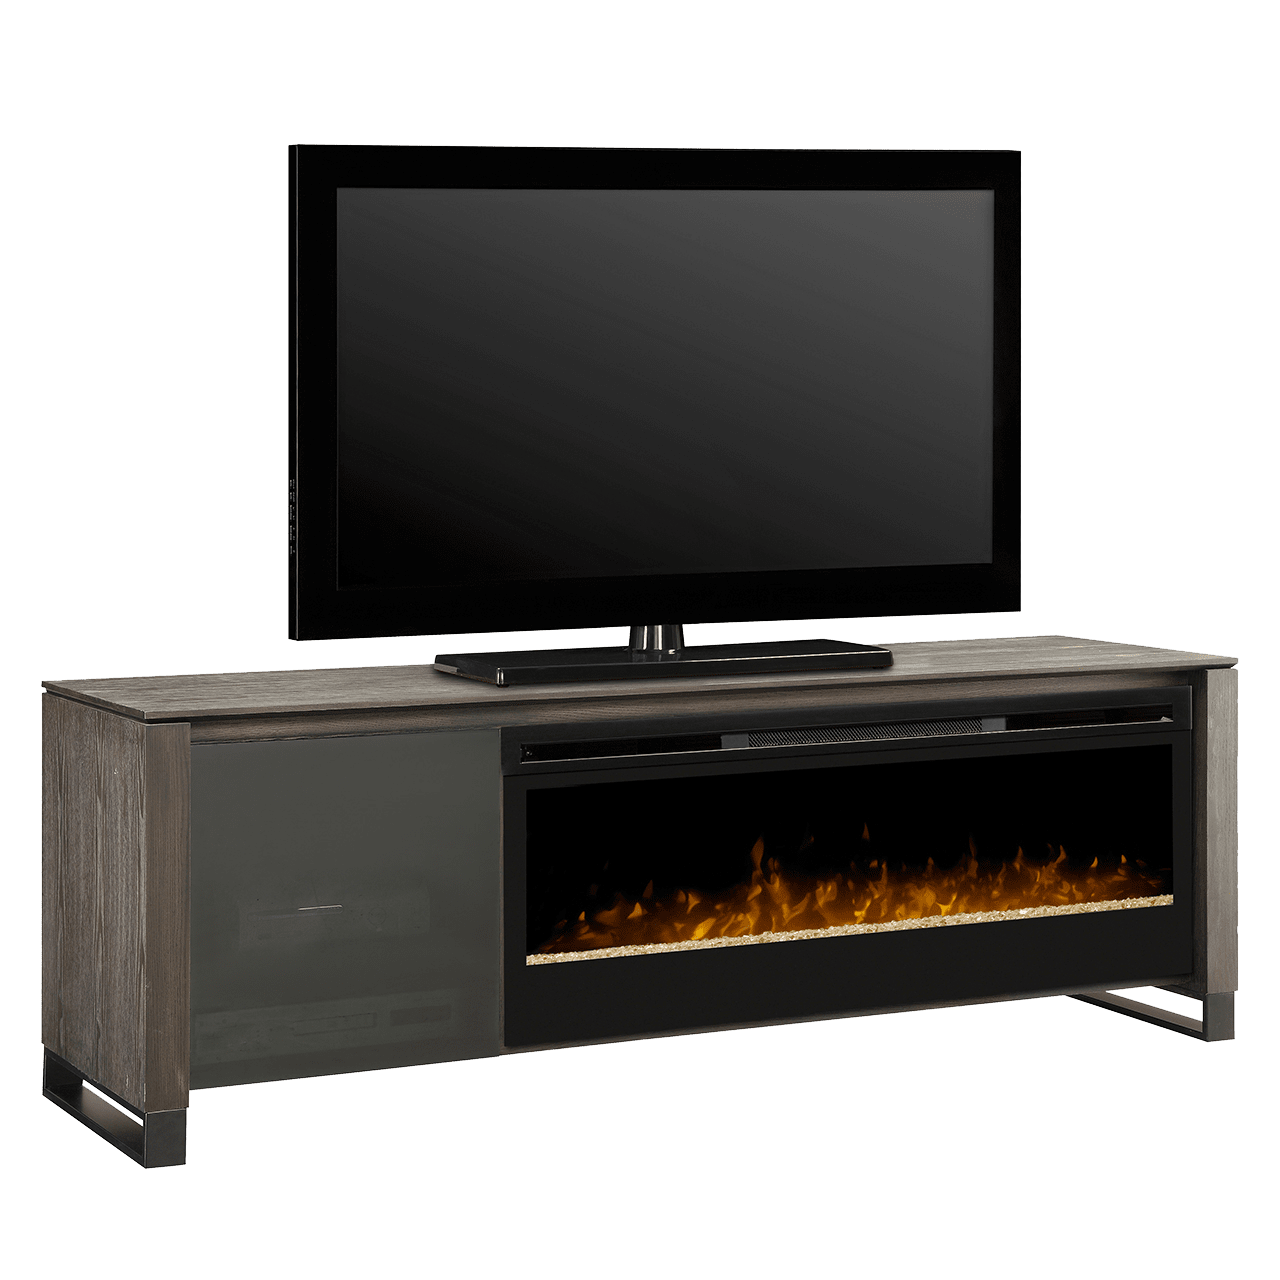 The Dimplex Howden Media Console Electric Fireplace is the ideal focal point of any in-home theatre or living room. Free Shipping at Sylvane.